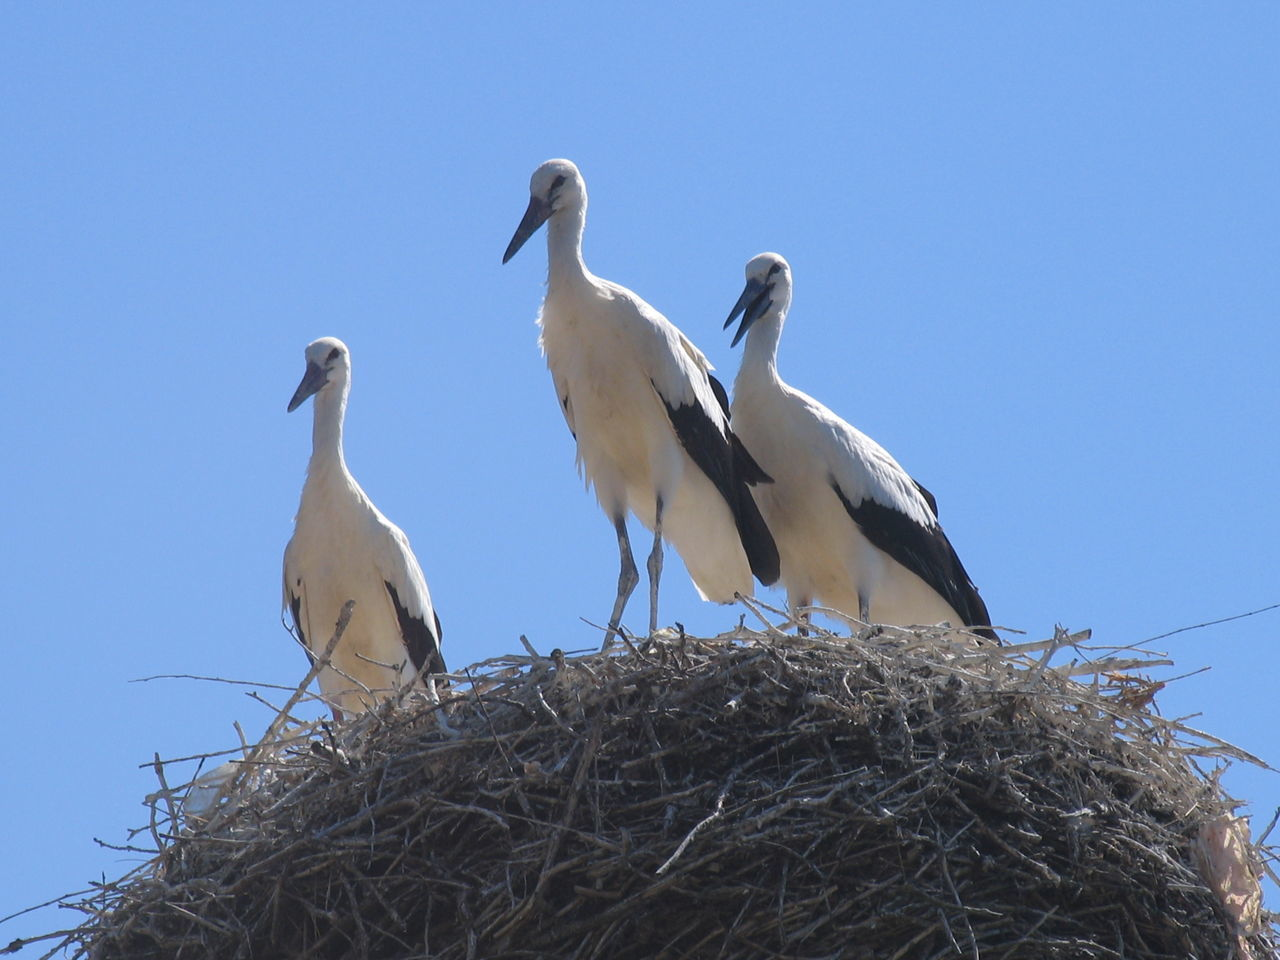 animals in the wild, bird, animal themes, animal wildlife, clear sky, bird nest, low angle view, two animals, stork, day, togetherness, no people, nature, white stork, outdoors, perching, beauty in nature, sky